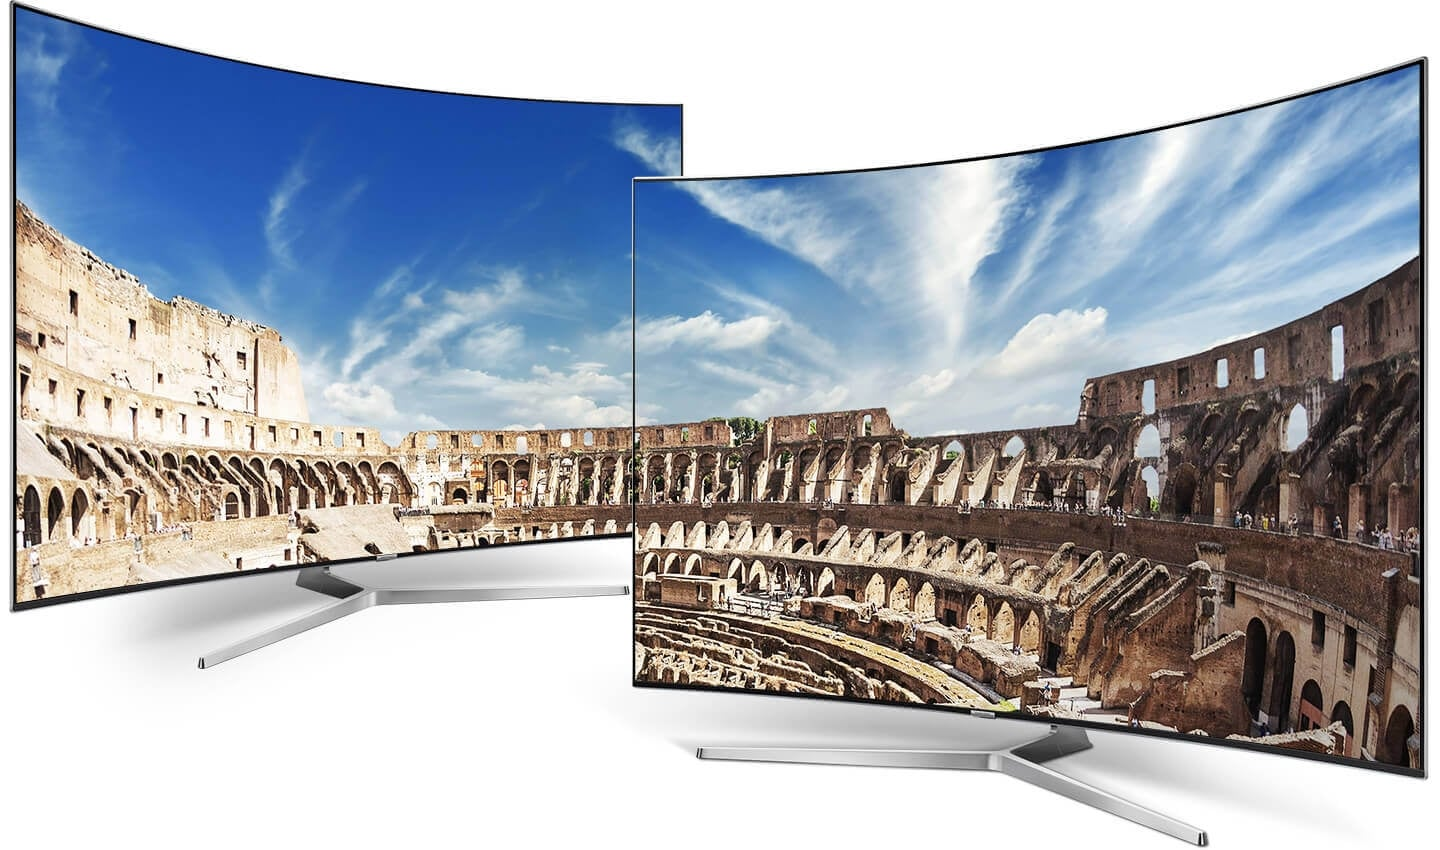 Two curved Samsung TVs are standing and an amphitheatre image is on a TV screen.